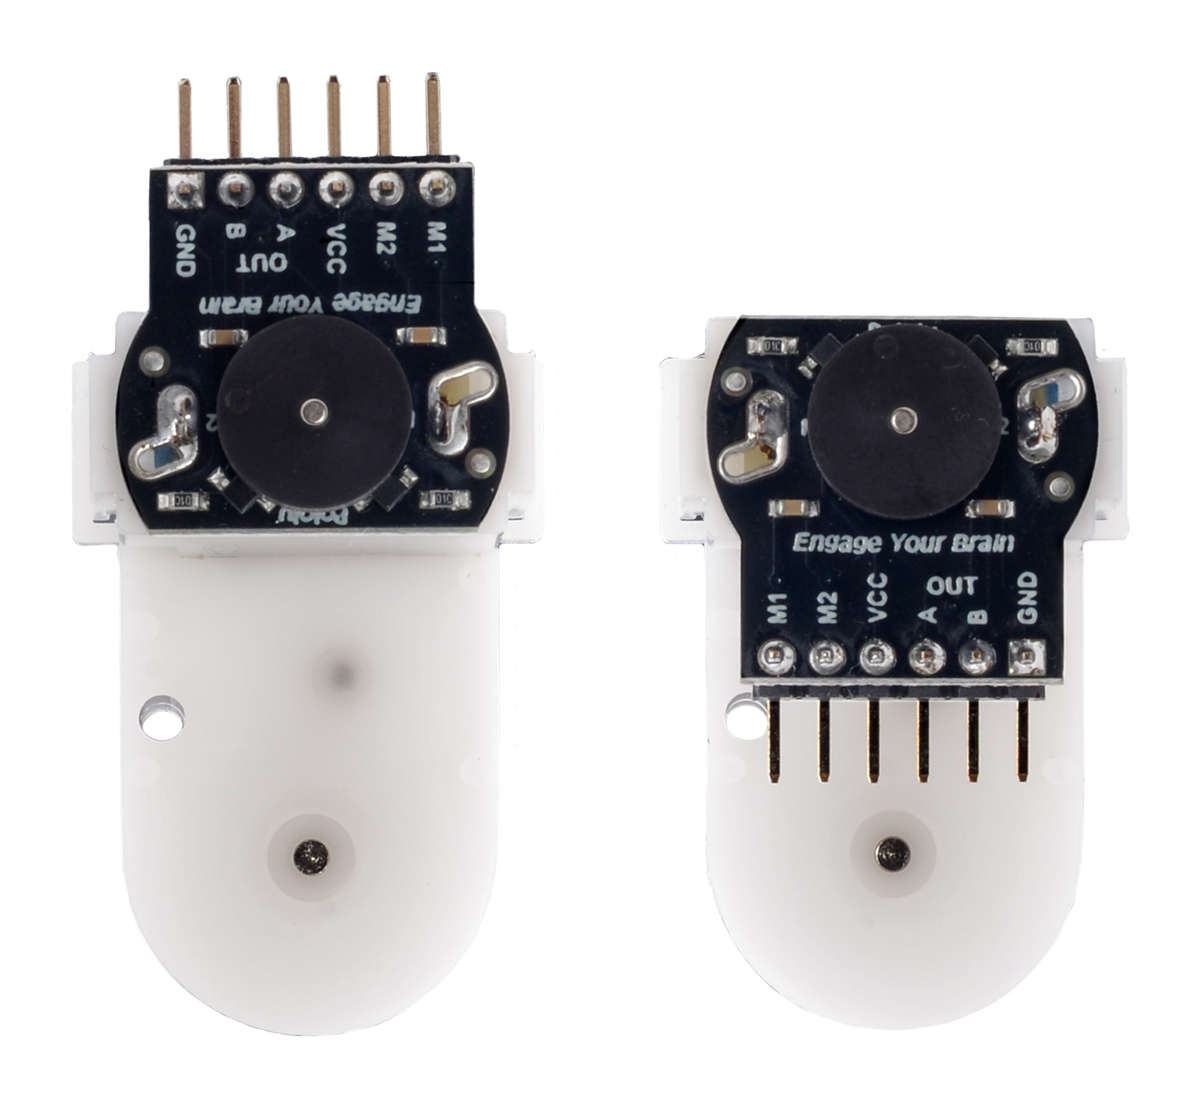 Pololu Romi Encoder Pair Kit 12 Cpr 35 18v Lowcost Shipment Shock Sensor Using A 6pin Sot23 Microcontroller The Motor Portion Can Be Removed From Gearbox And Rotated 180 To Change Whether Connector Pins Point Up Or Down